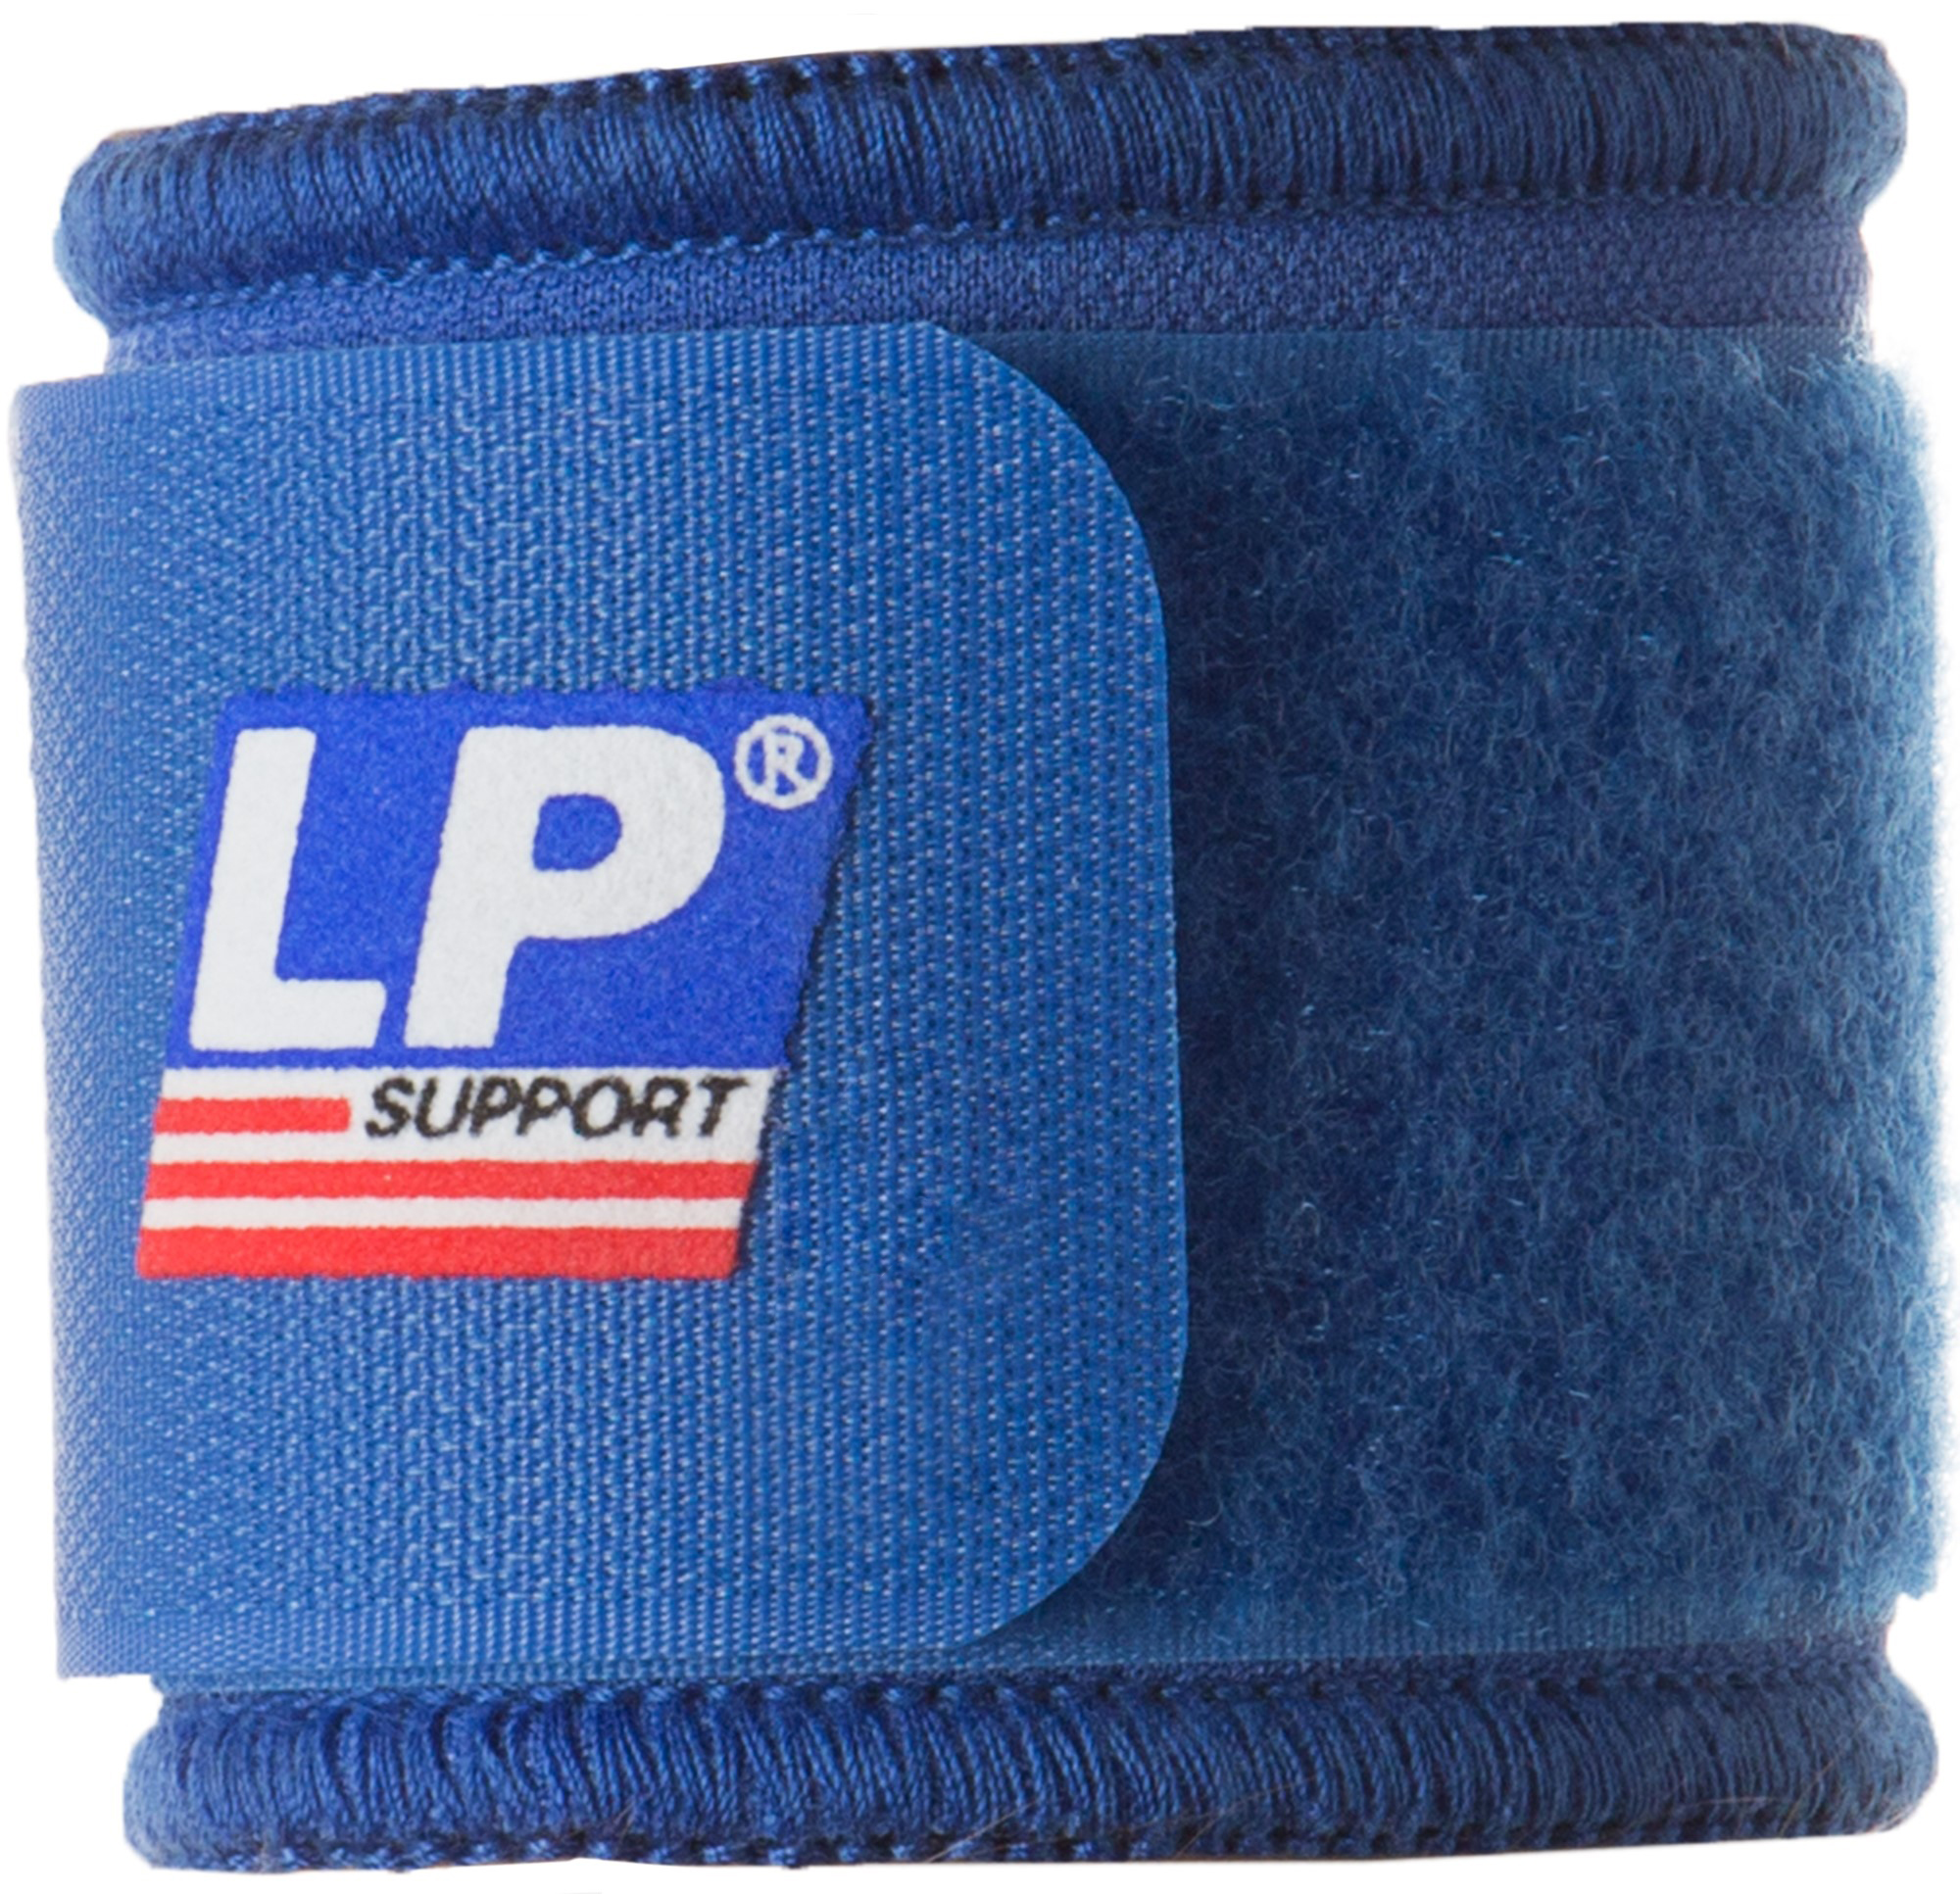 LP Support Суппорт запястья LP 703 nguyen pham student support policies